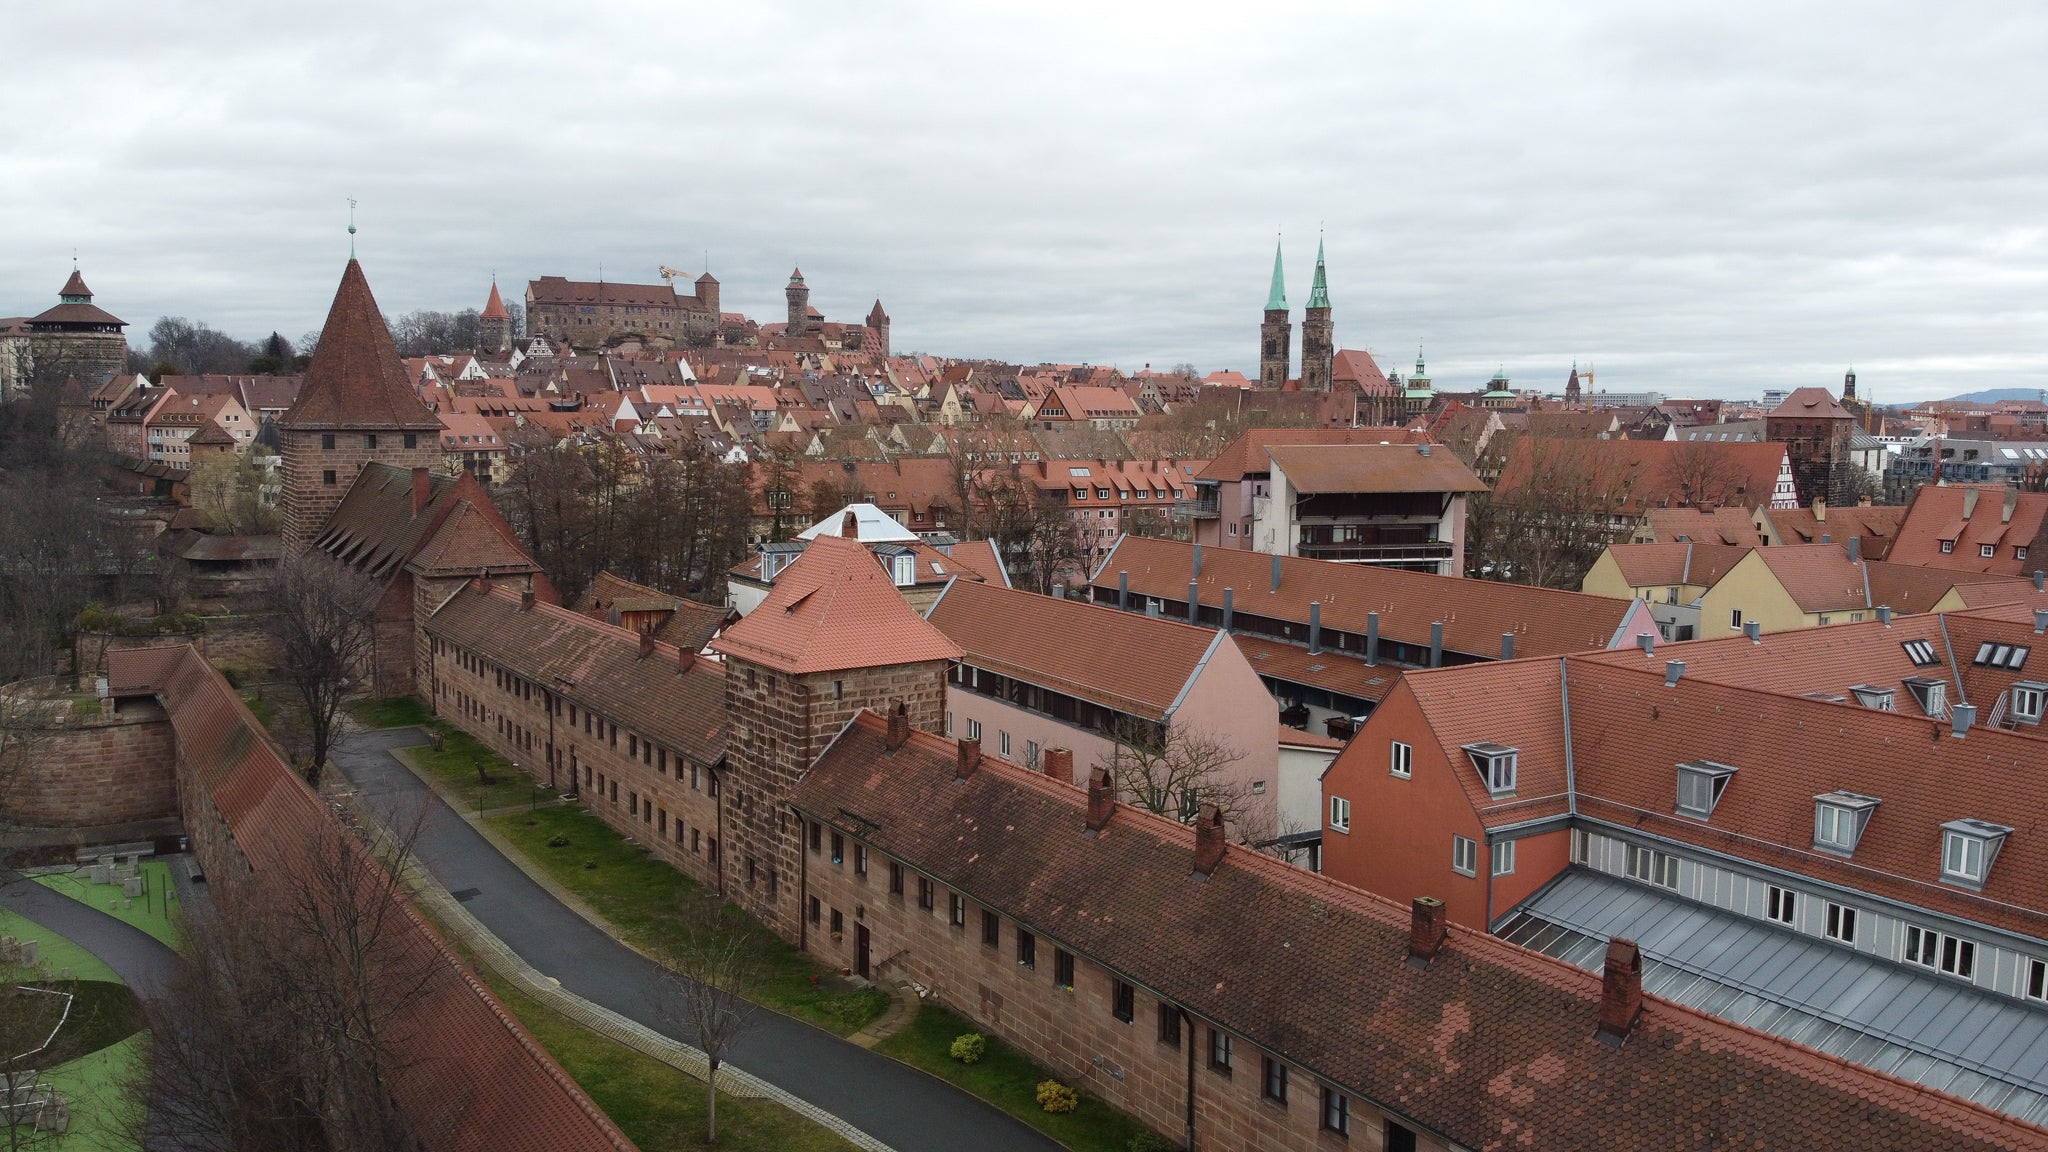 Nuremberg Germany, home of rich German history and ANBU Shinobi